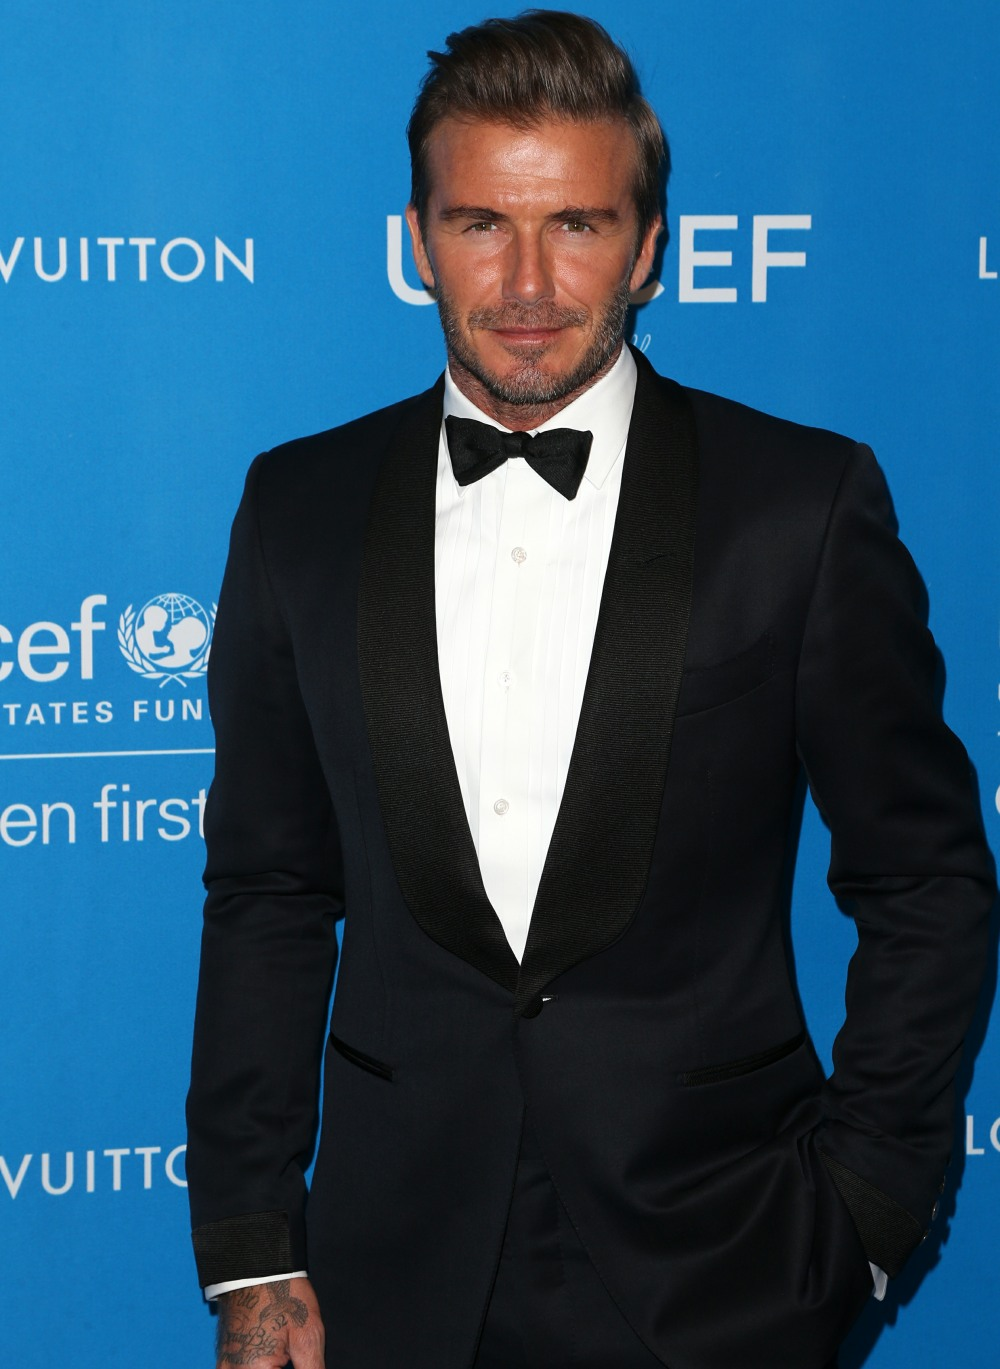 6th Annual UNICEF Ball  bitchy | David Beckham's 'hacked emails' reveal he's obsessive about getting a knighthood wenn23352113